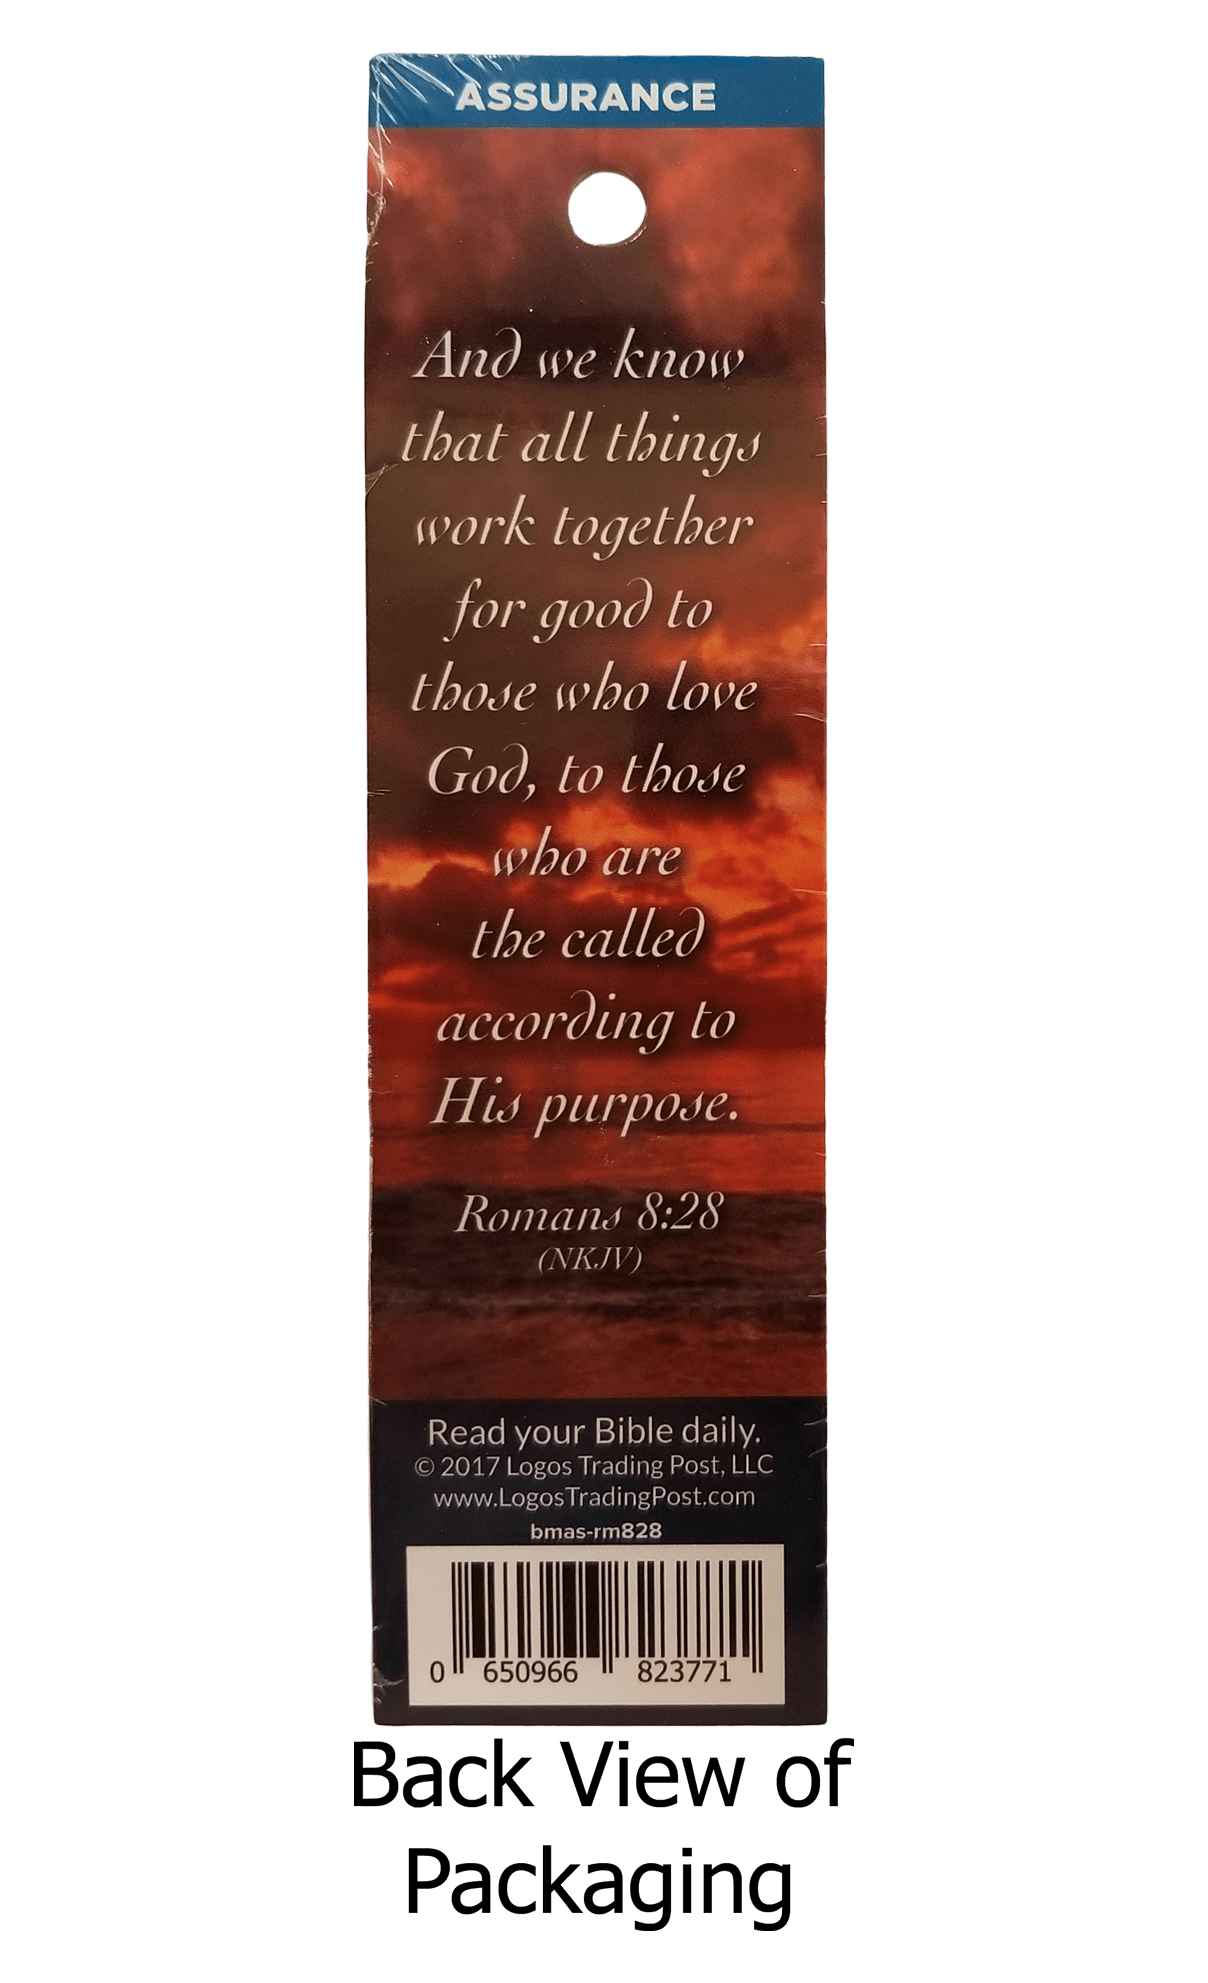 All Things Work Together for Good Bookmarks, Pack of 25 - Logos Trading Post, Christian Gift